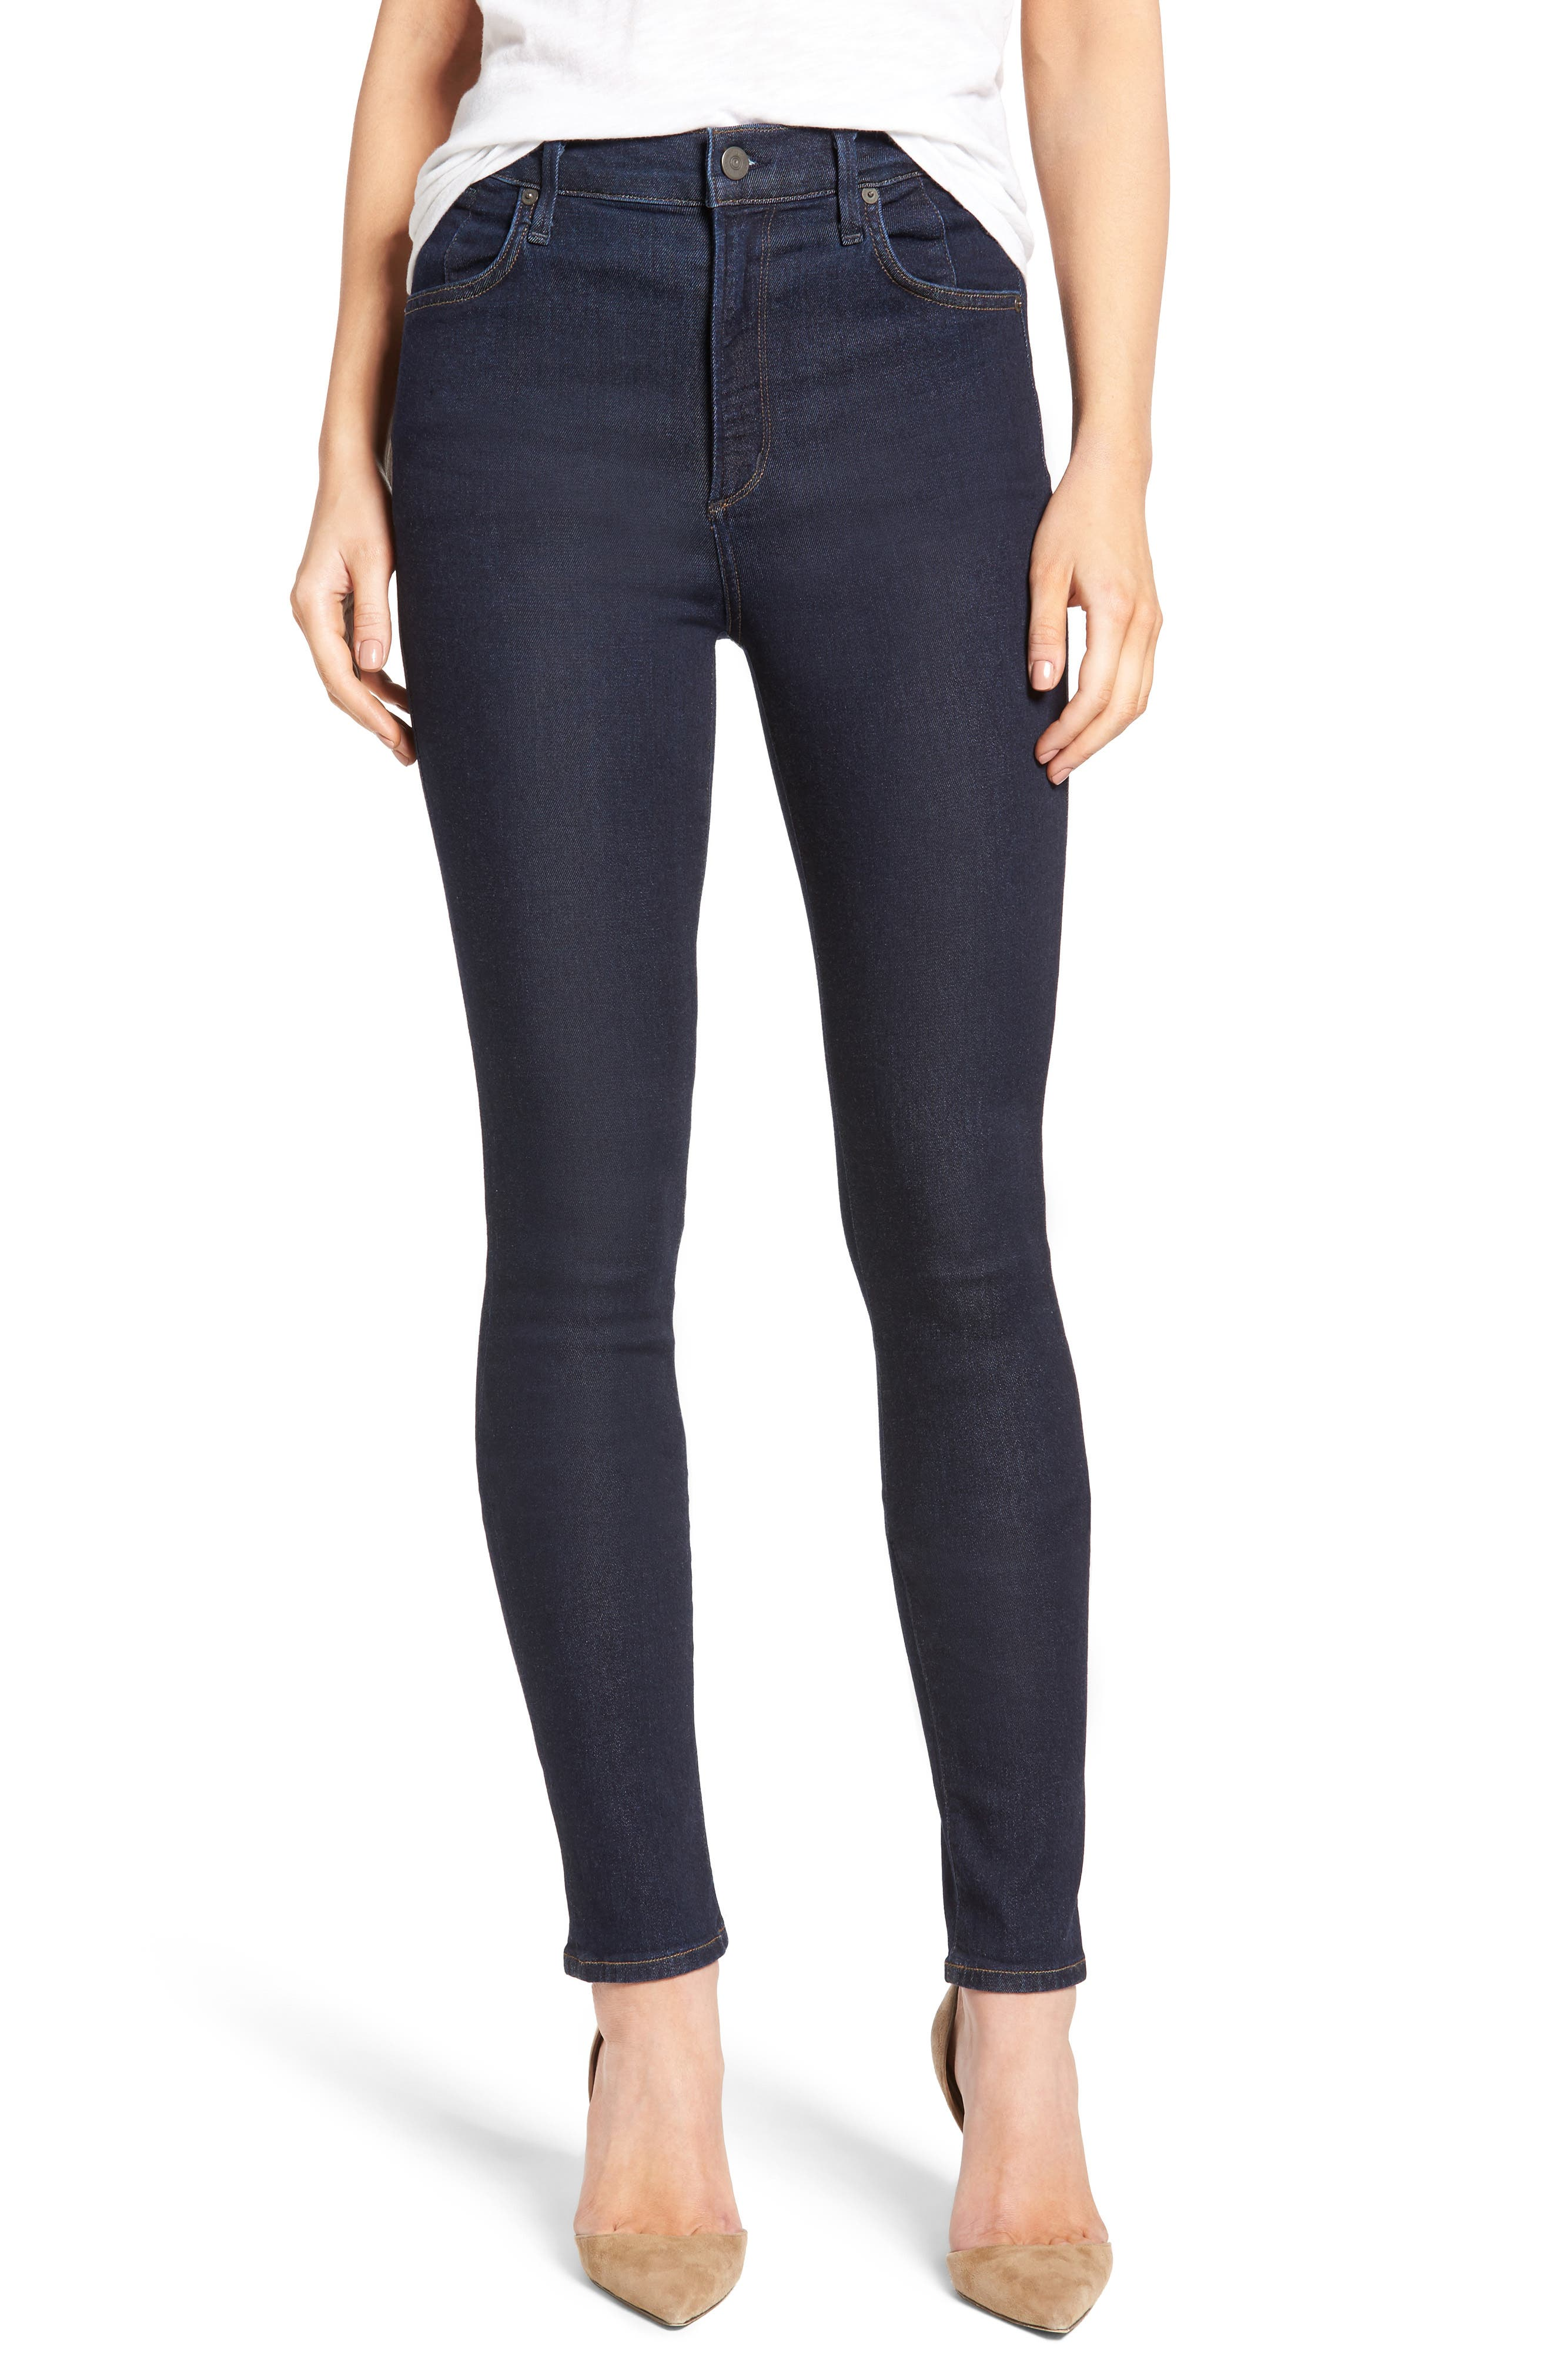 CITIZENS OF HUMANITY Carlie High Waist Skinny Jeans